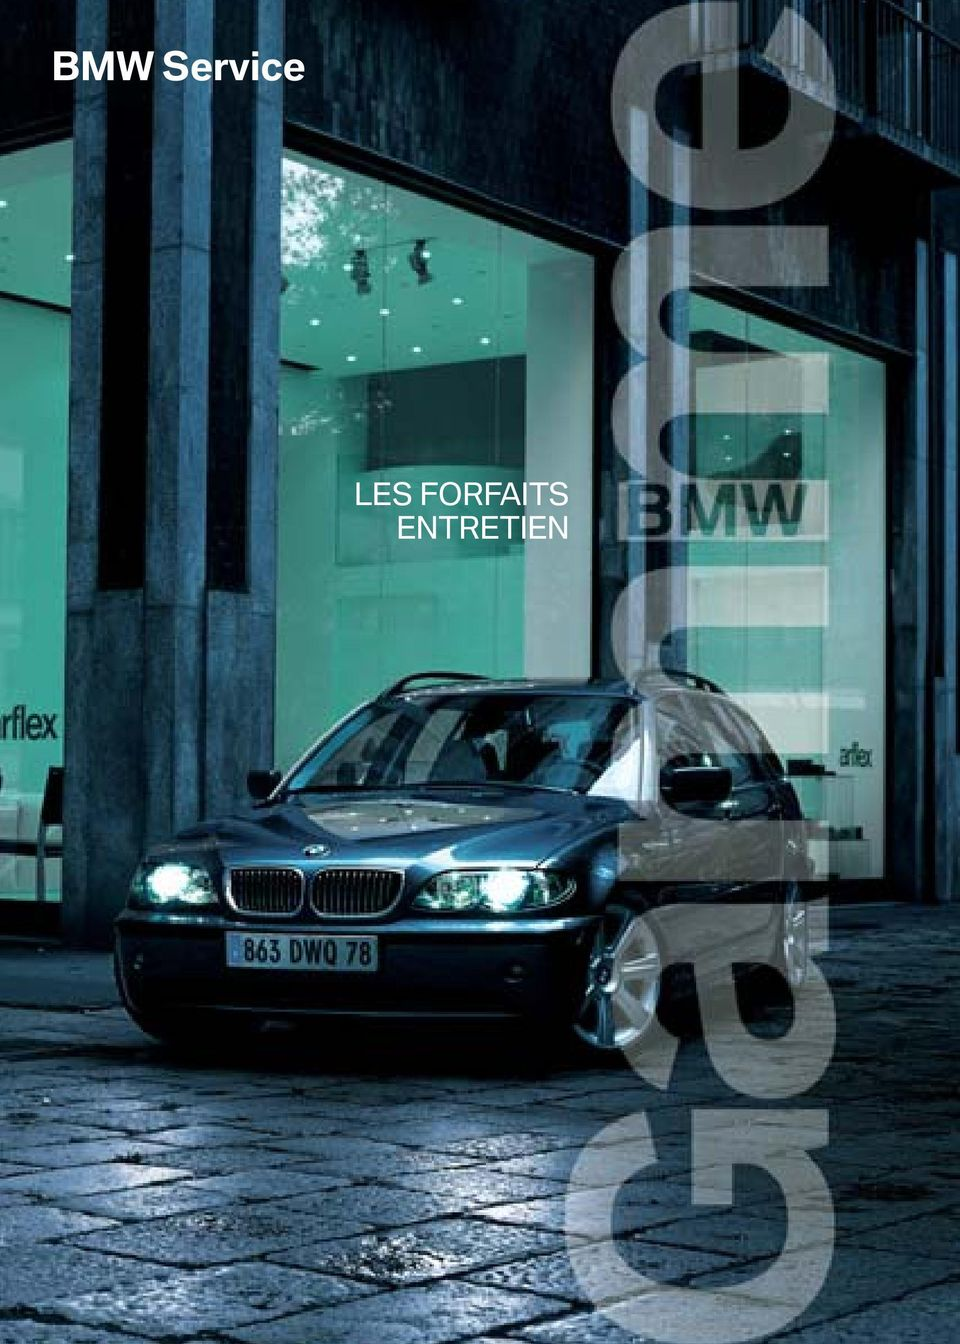 bmw service les forfaits entretien pdf. Black Bedroom Furniture Sets. Home Design Ideas